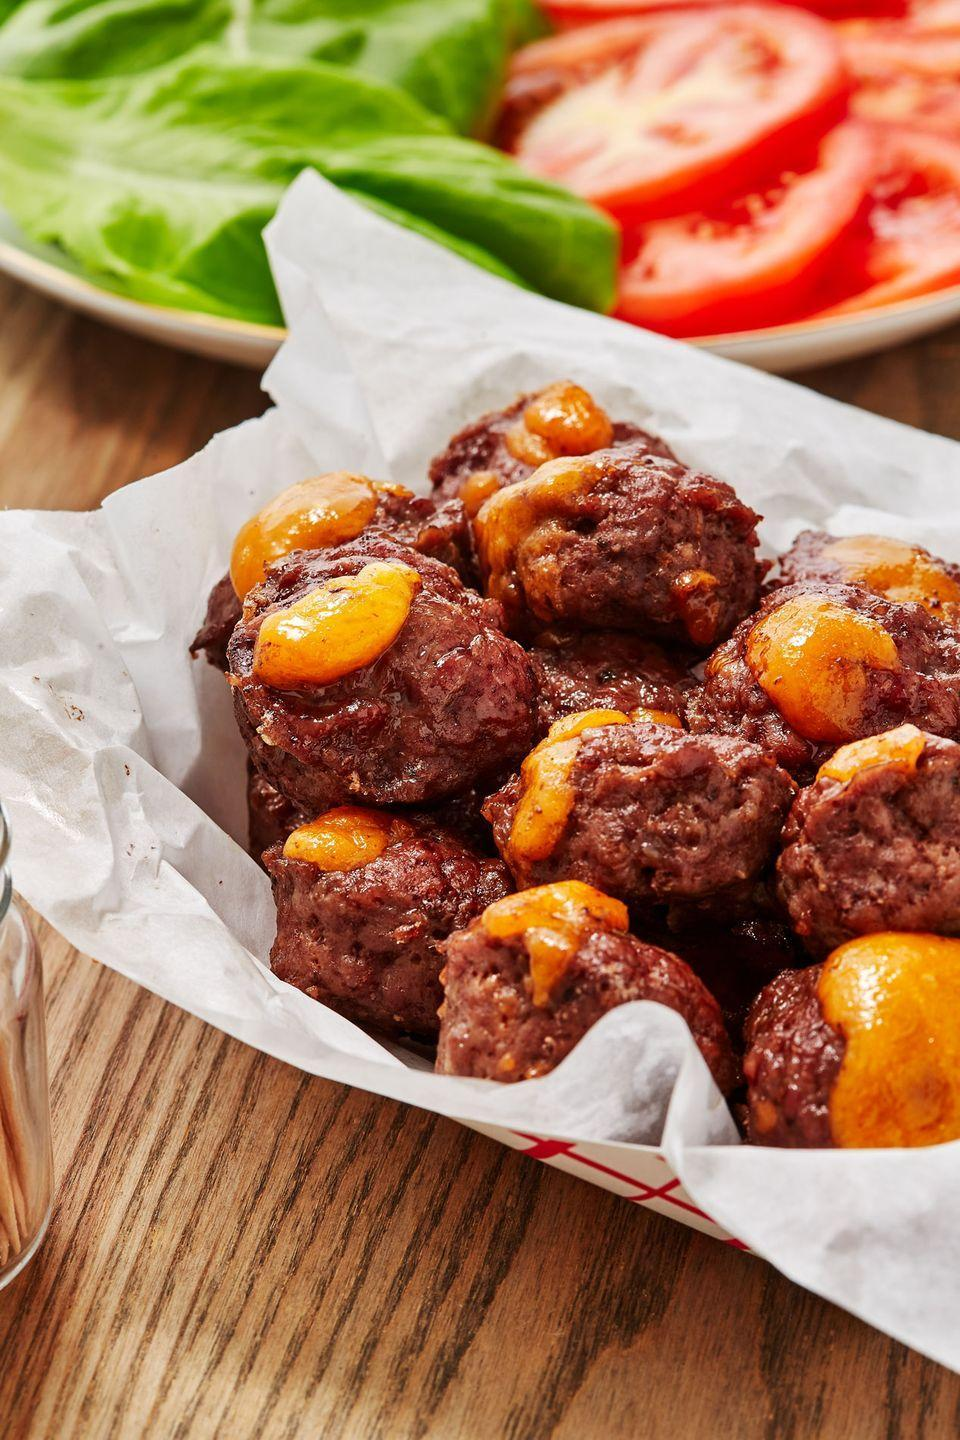 "<p>These are unbelievably rich and habit-forming.</p><p>Get the recipe from <a href=""https://www.delish.com/cooking/recipe-ideas/a22027017/keto-burger-fat-bombs-recipe/"" rel=""nofollow noopener"" target=""_blank"" data-ylk=""slk:Delish"" class=""link rapid-noclick-resp"">Delish</a>.</p>"